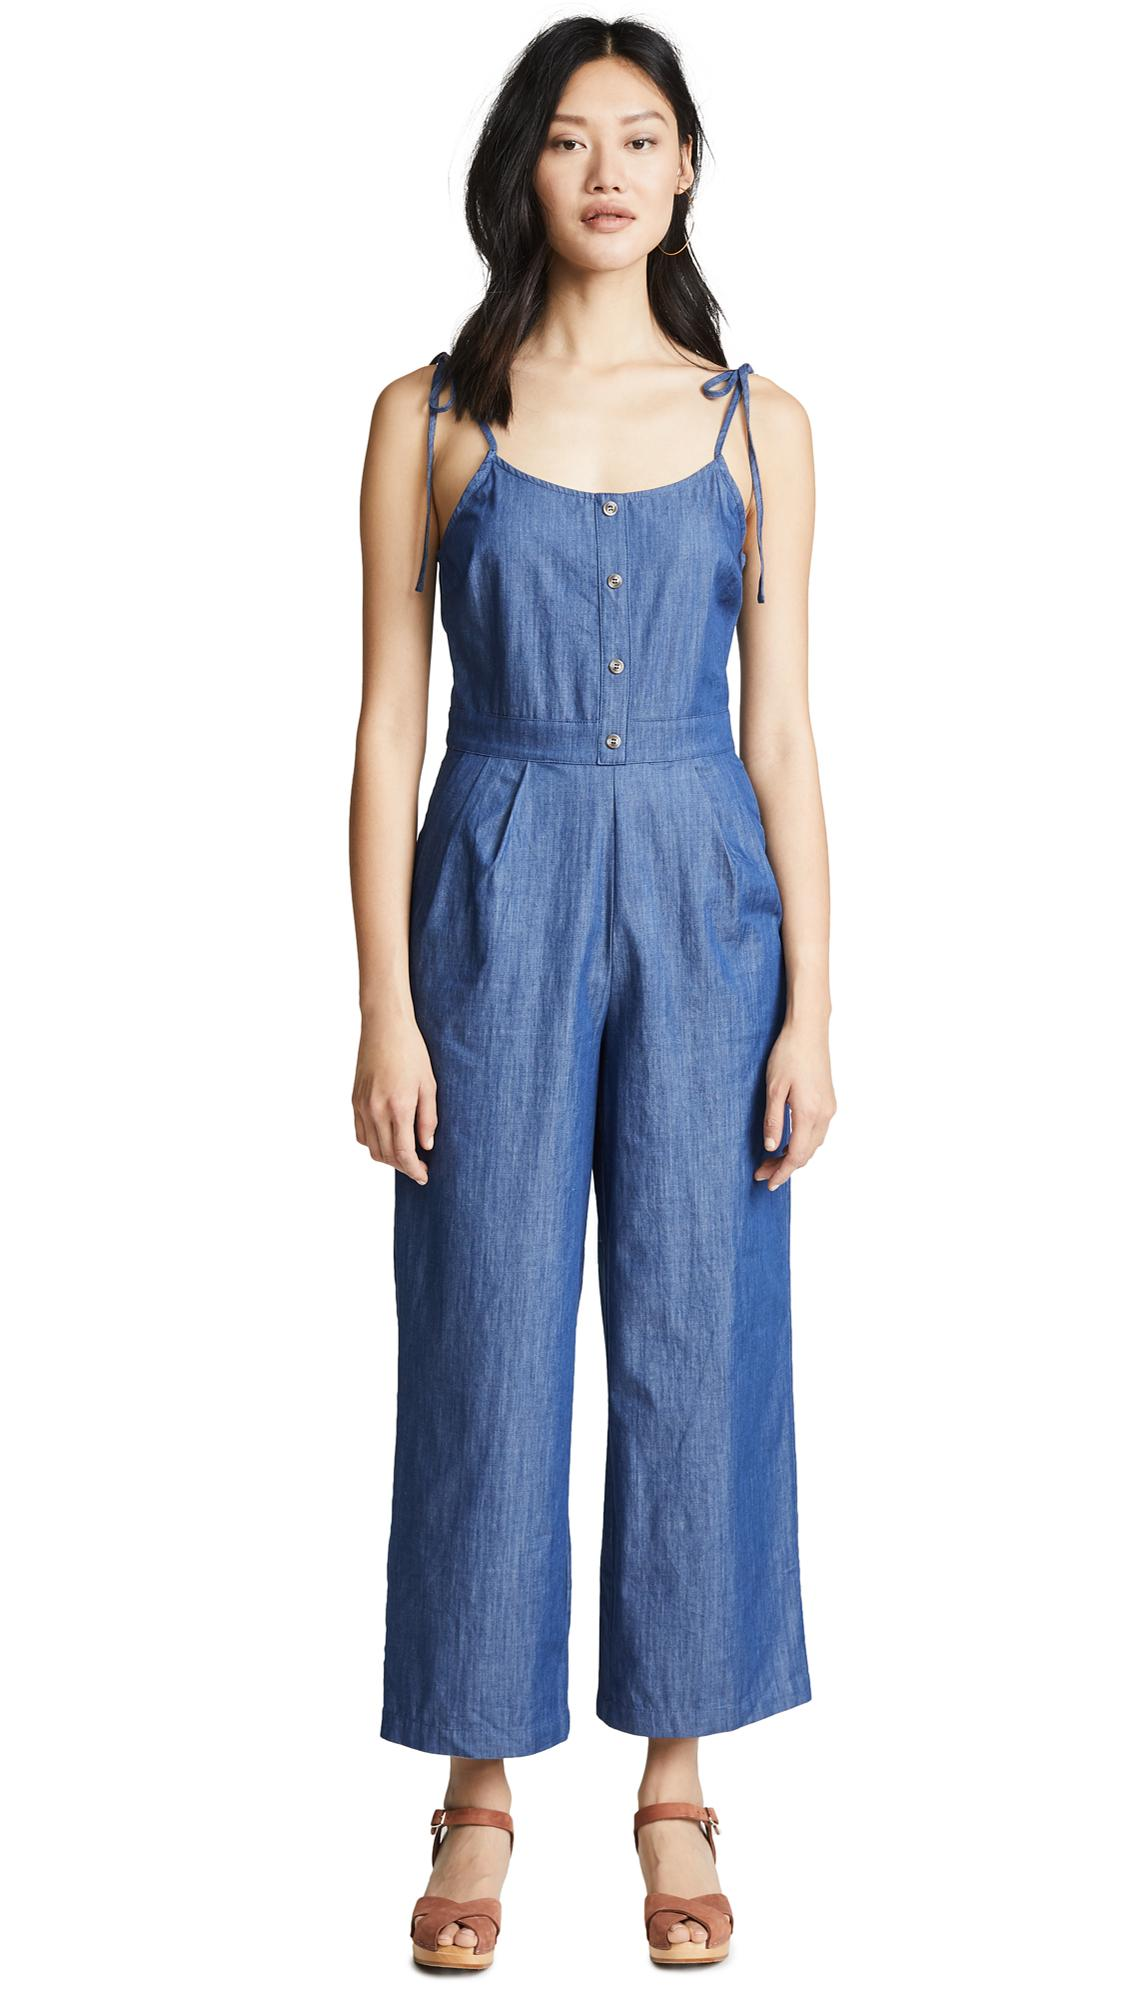 66261c8fa06 Evidnt Tie Shoulder Jumpsuit In Chambray